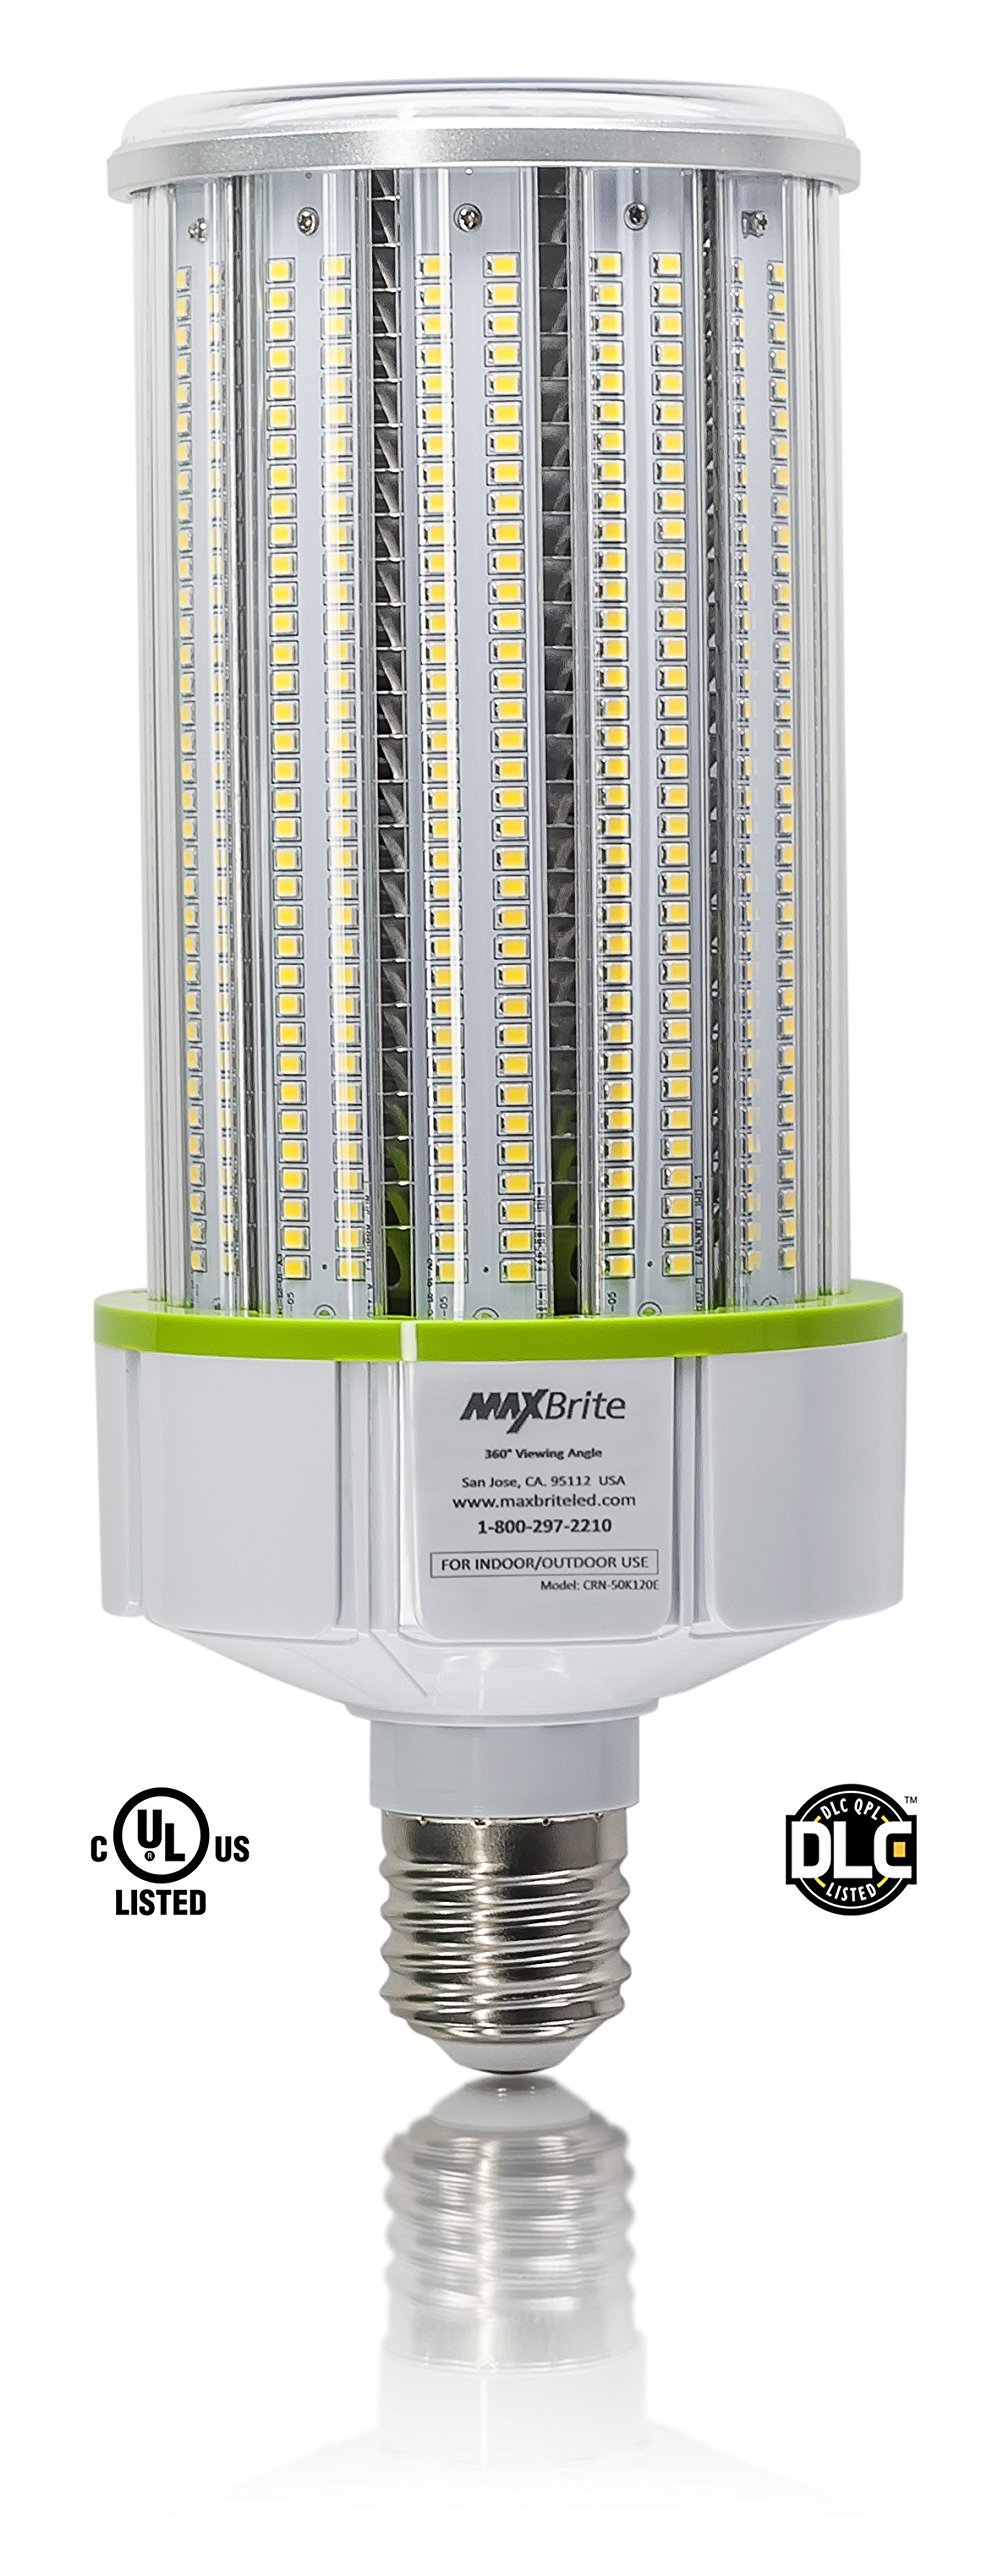 120W LED CORN LIGHT BULB 5000K Replaces 800W, 13,800 lumens Mogul Base E39, 100-277V AC UL/cUL DLC by MaxBrite